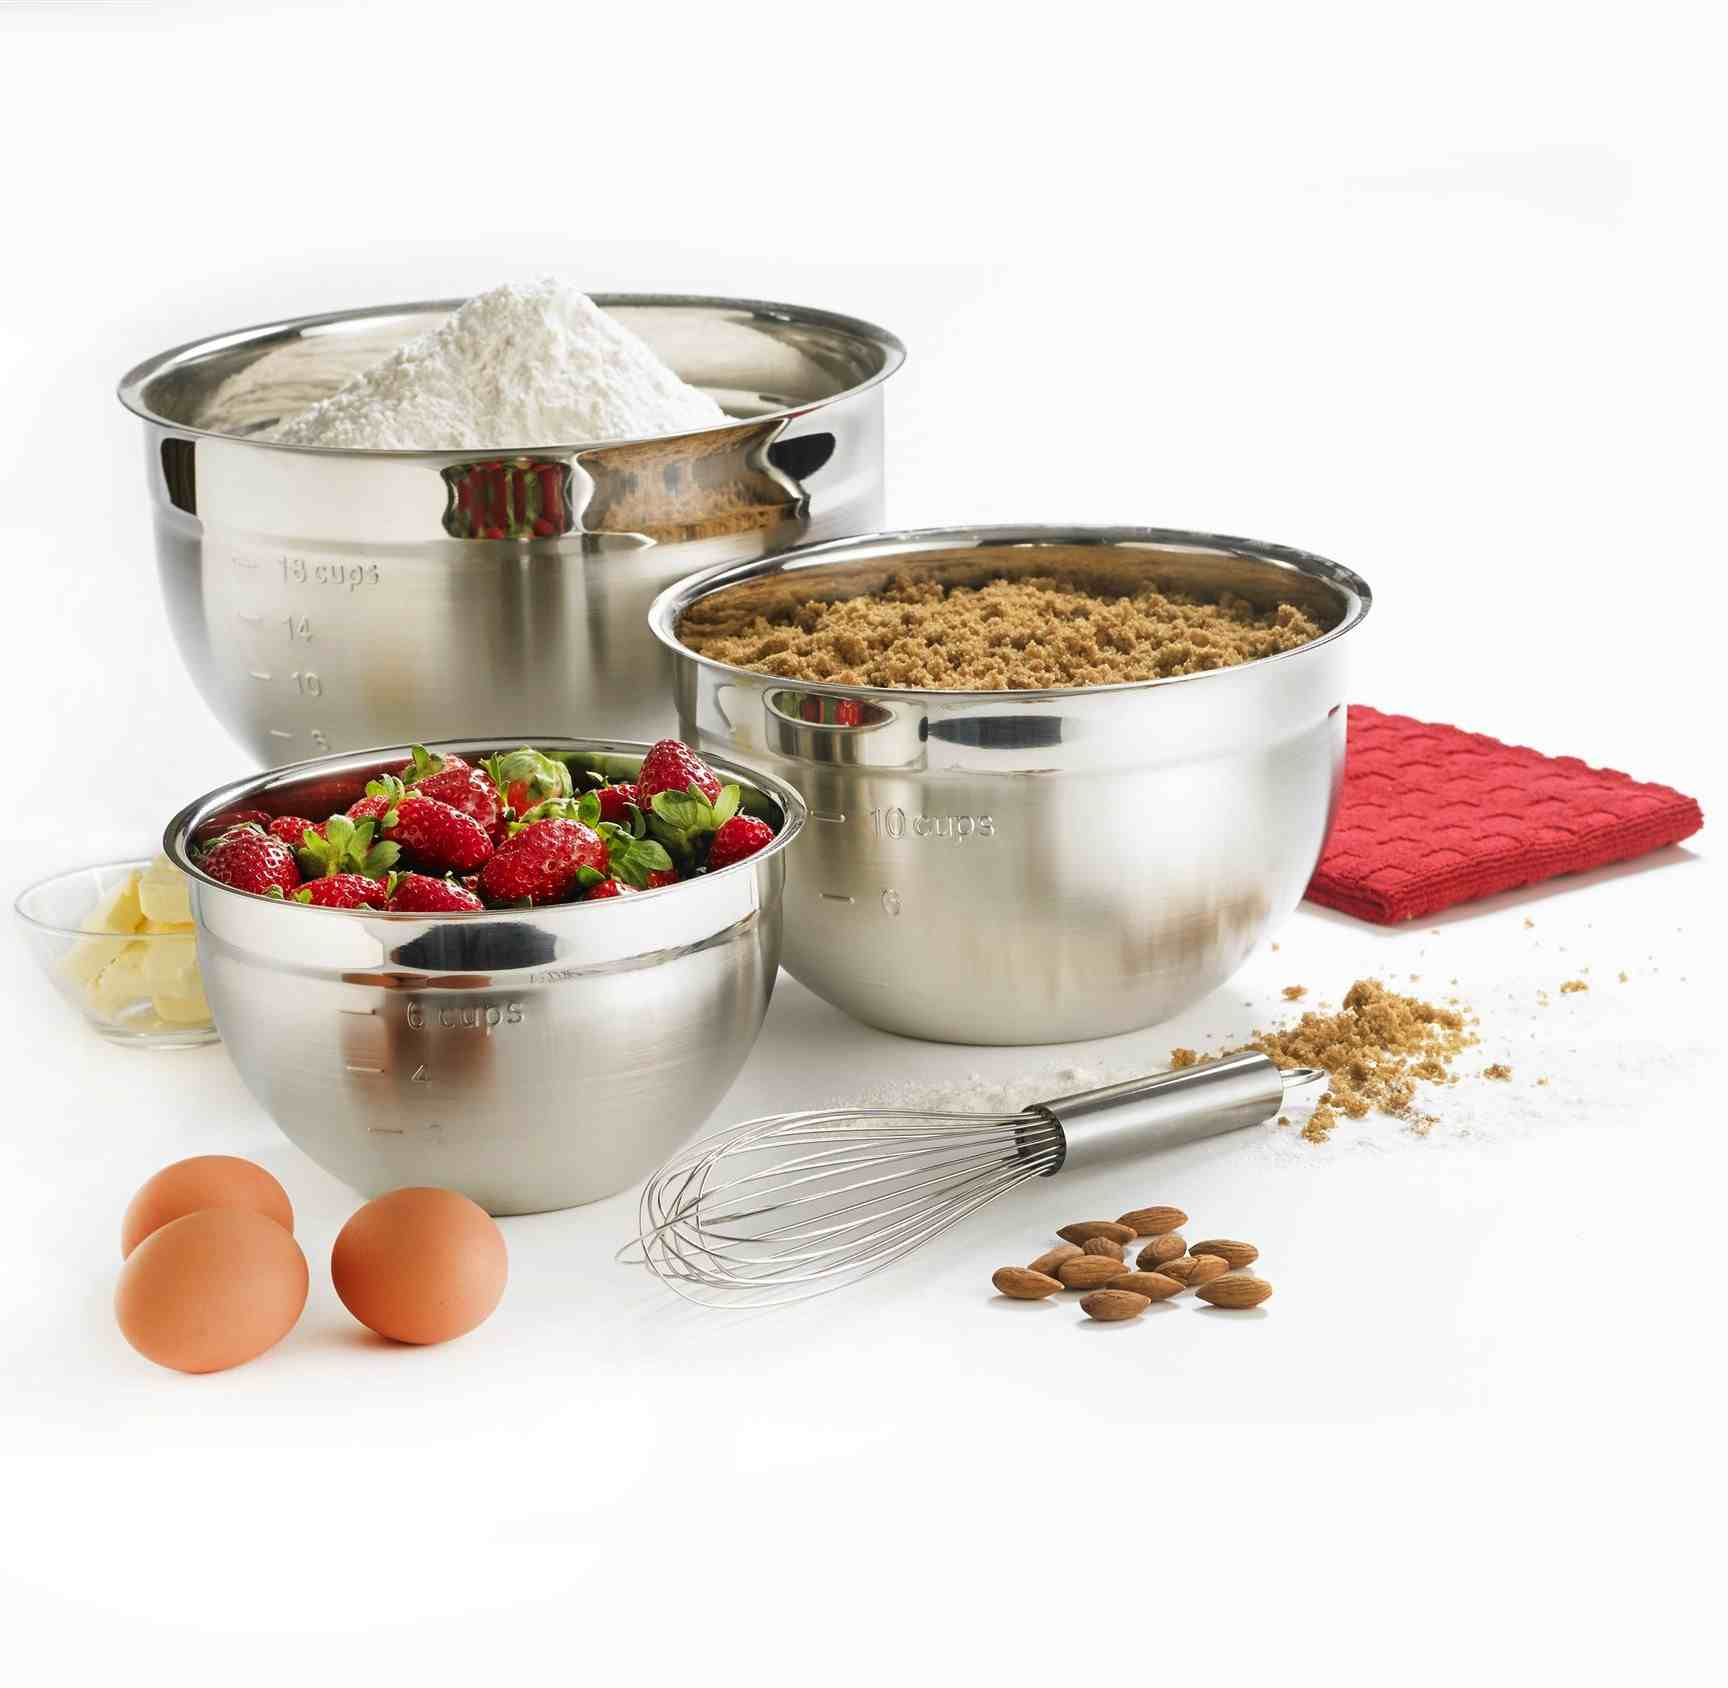 Cuisipro Definitive 3pc Stainless Steel Mixing Bowl Set